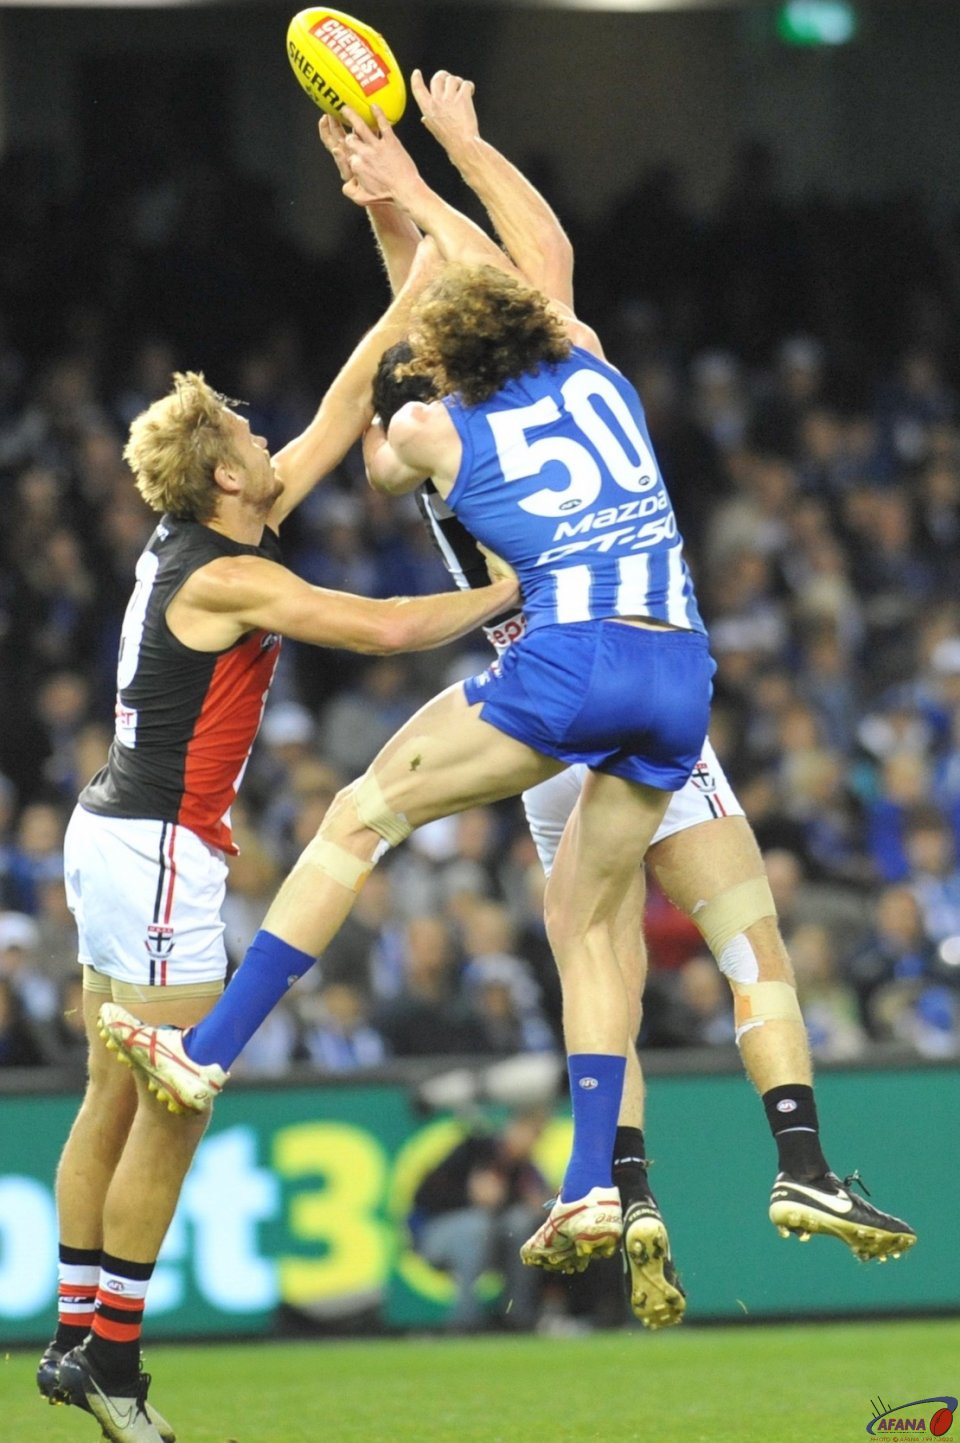 Ben Brown contests the ball against Dylan Roberton and Sam Gilbert